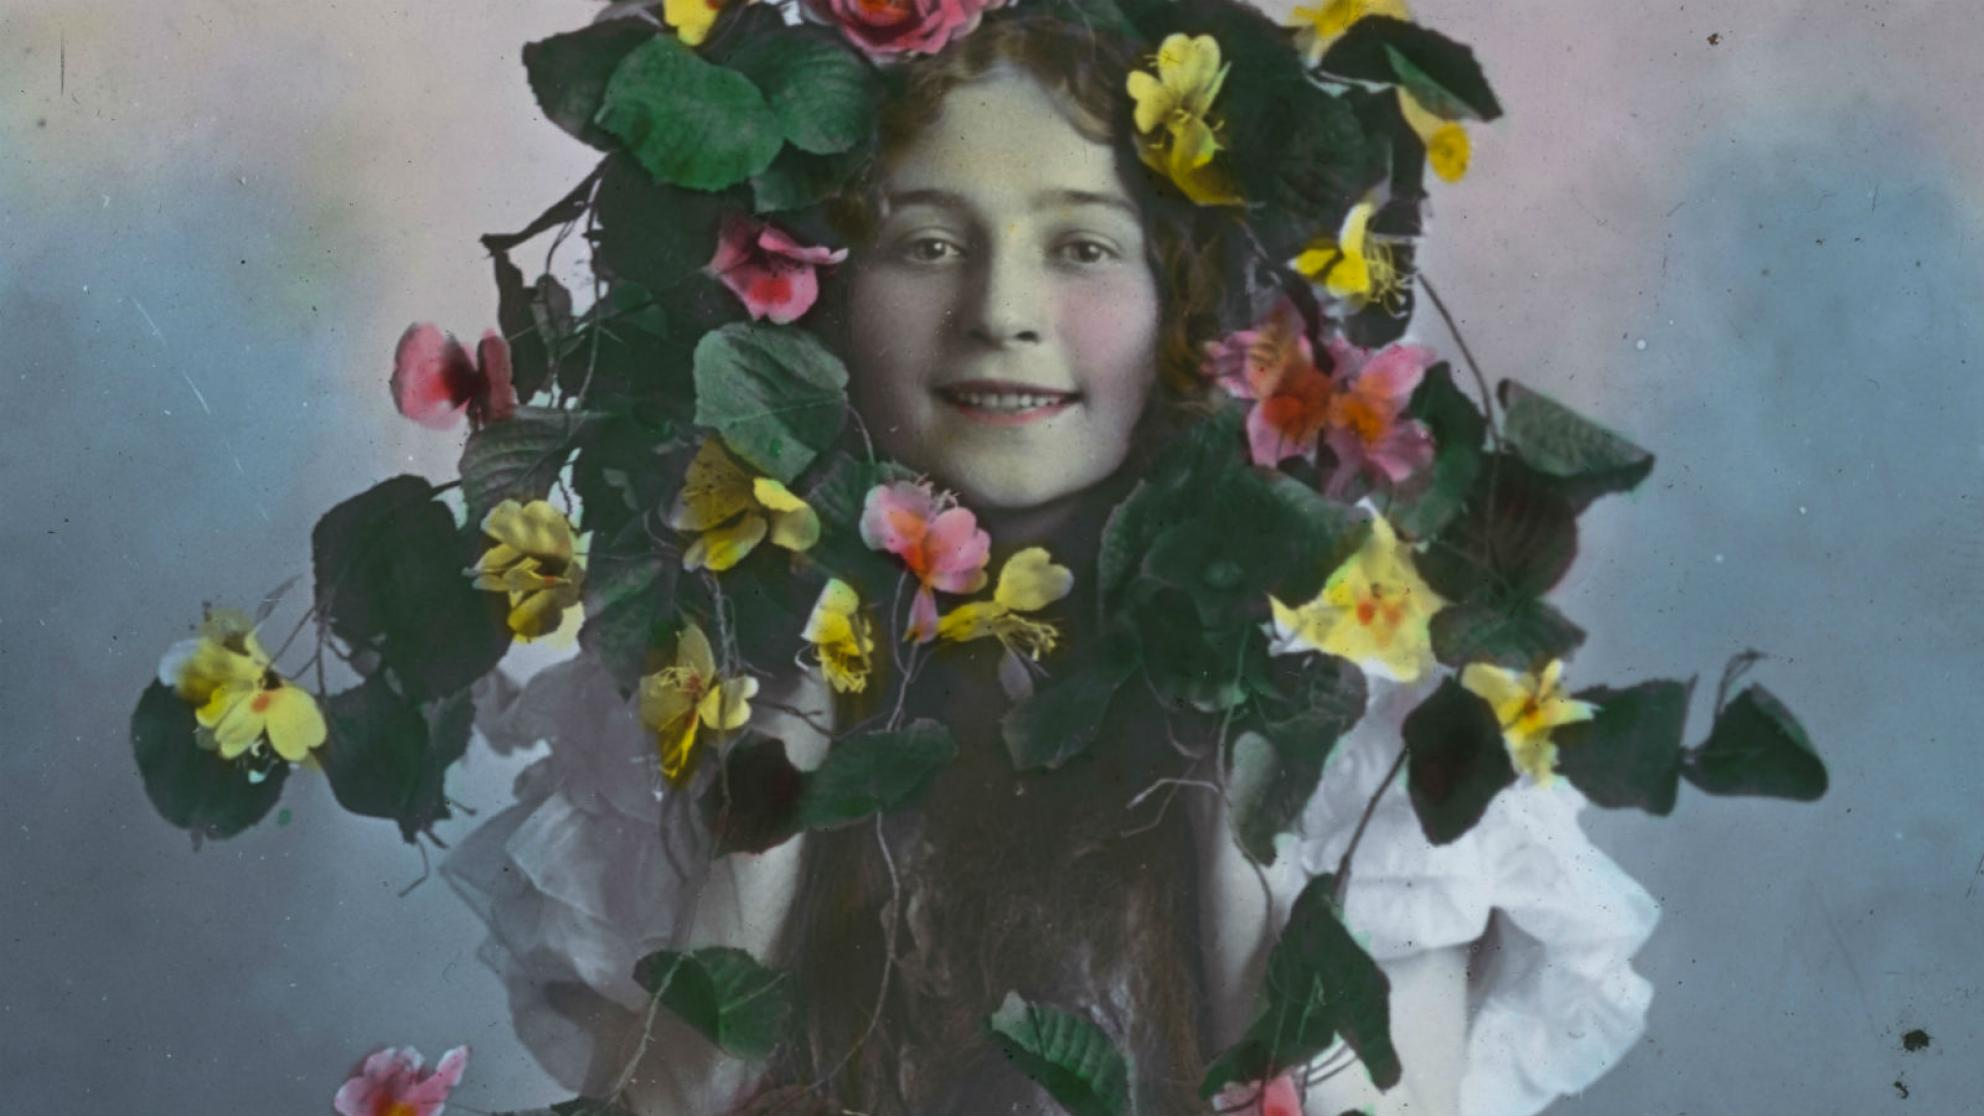 Glass slide image of a young girl peering through the centre of a wreath of flowers.